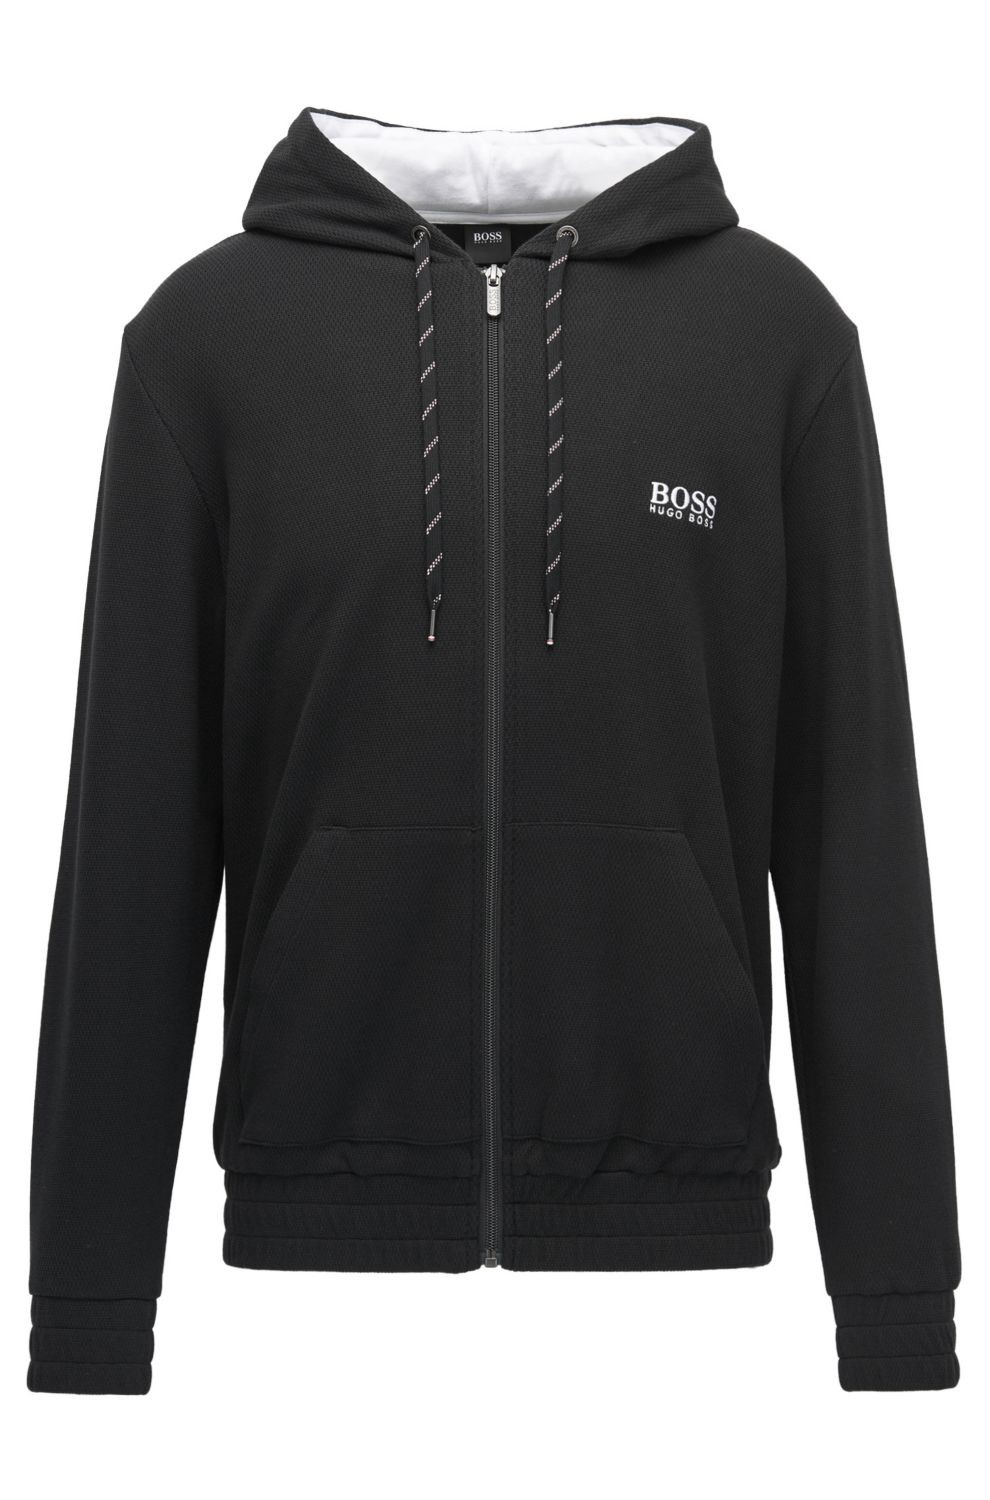 b9ca2f55a Boss Stretch Cotton Hoodie | Contemp Jacket - XL | Stuff to buy ...